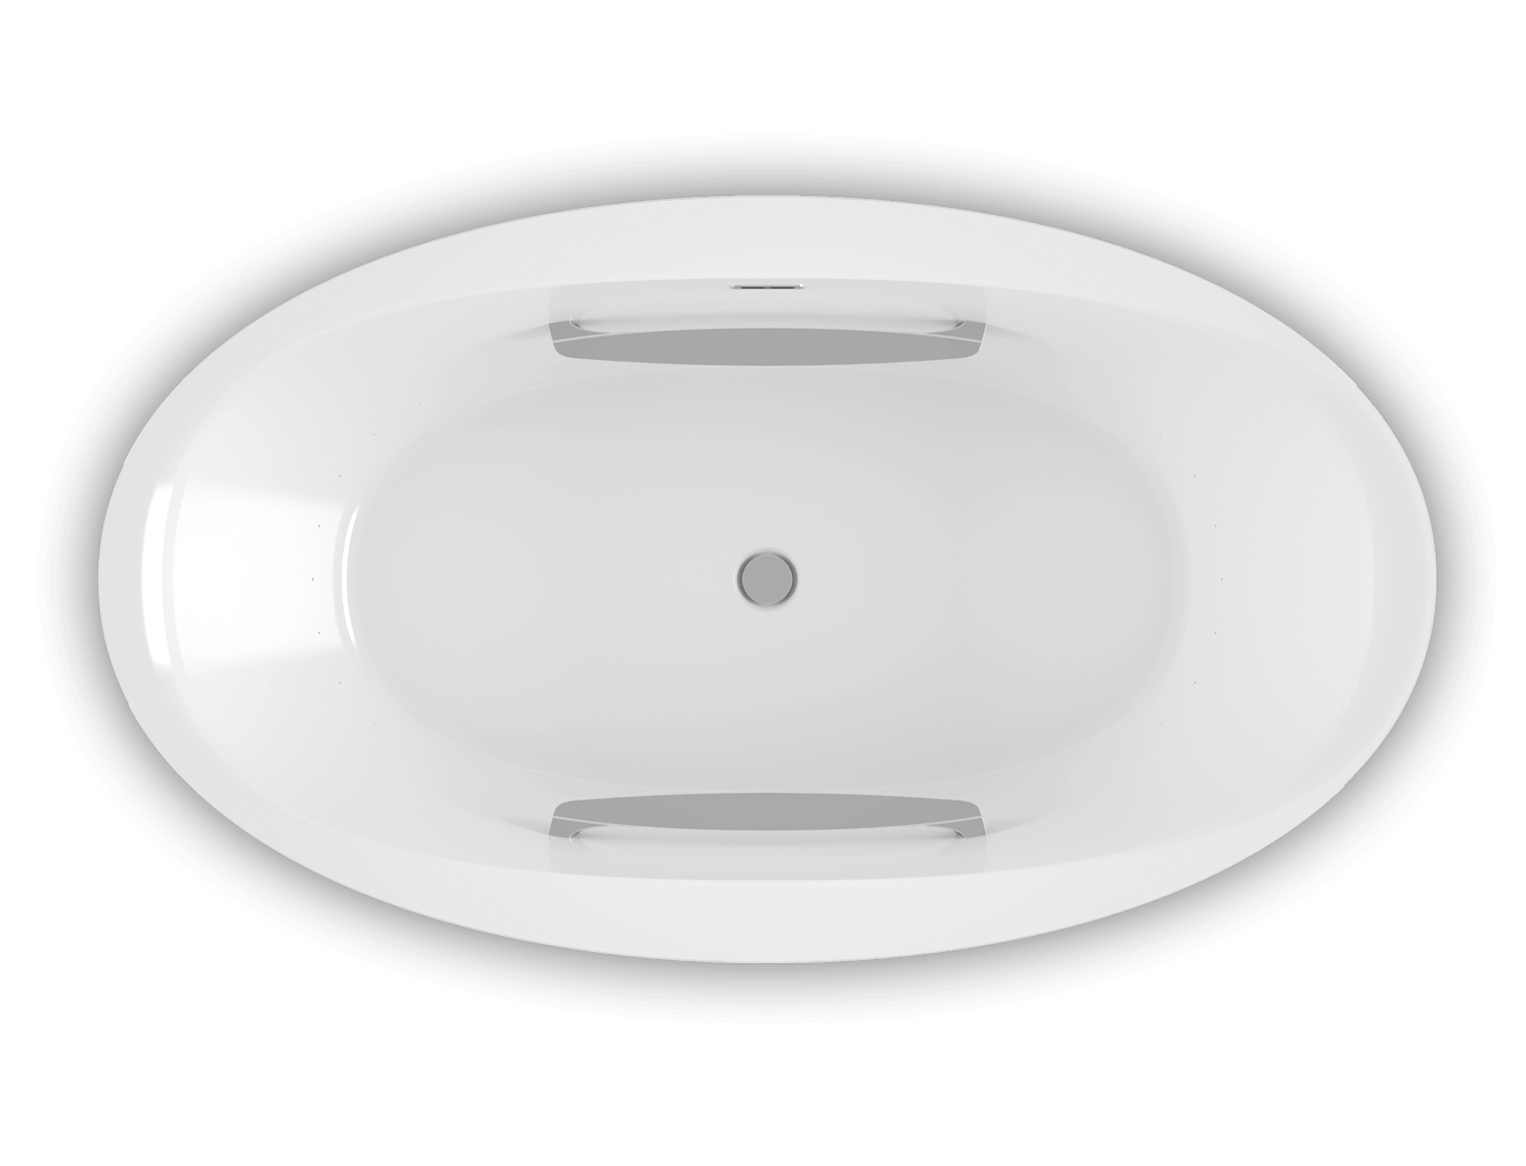 Scala 6638 air jet bathtub for your modern bathroom